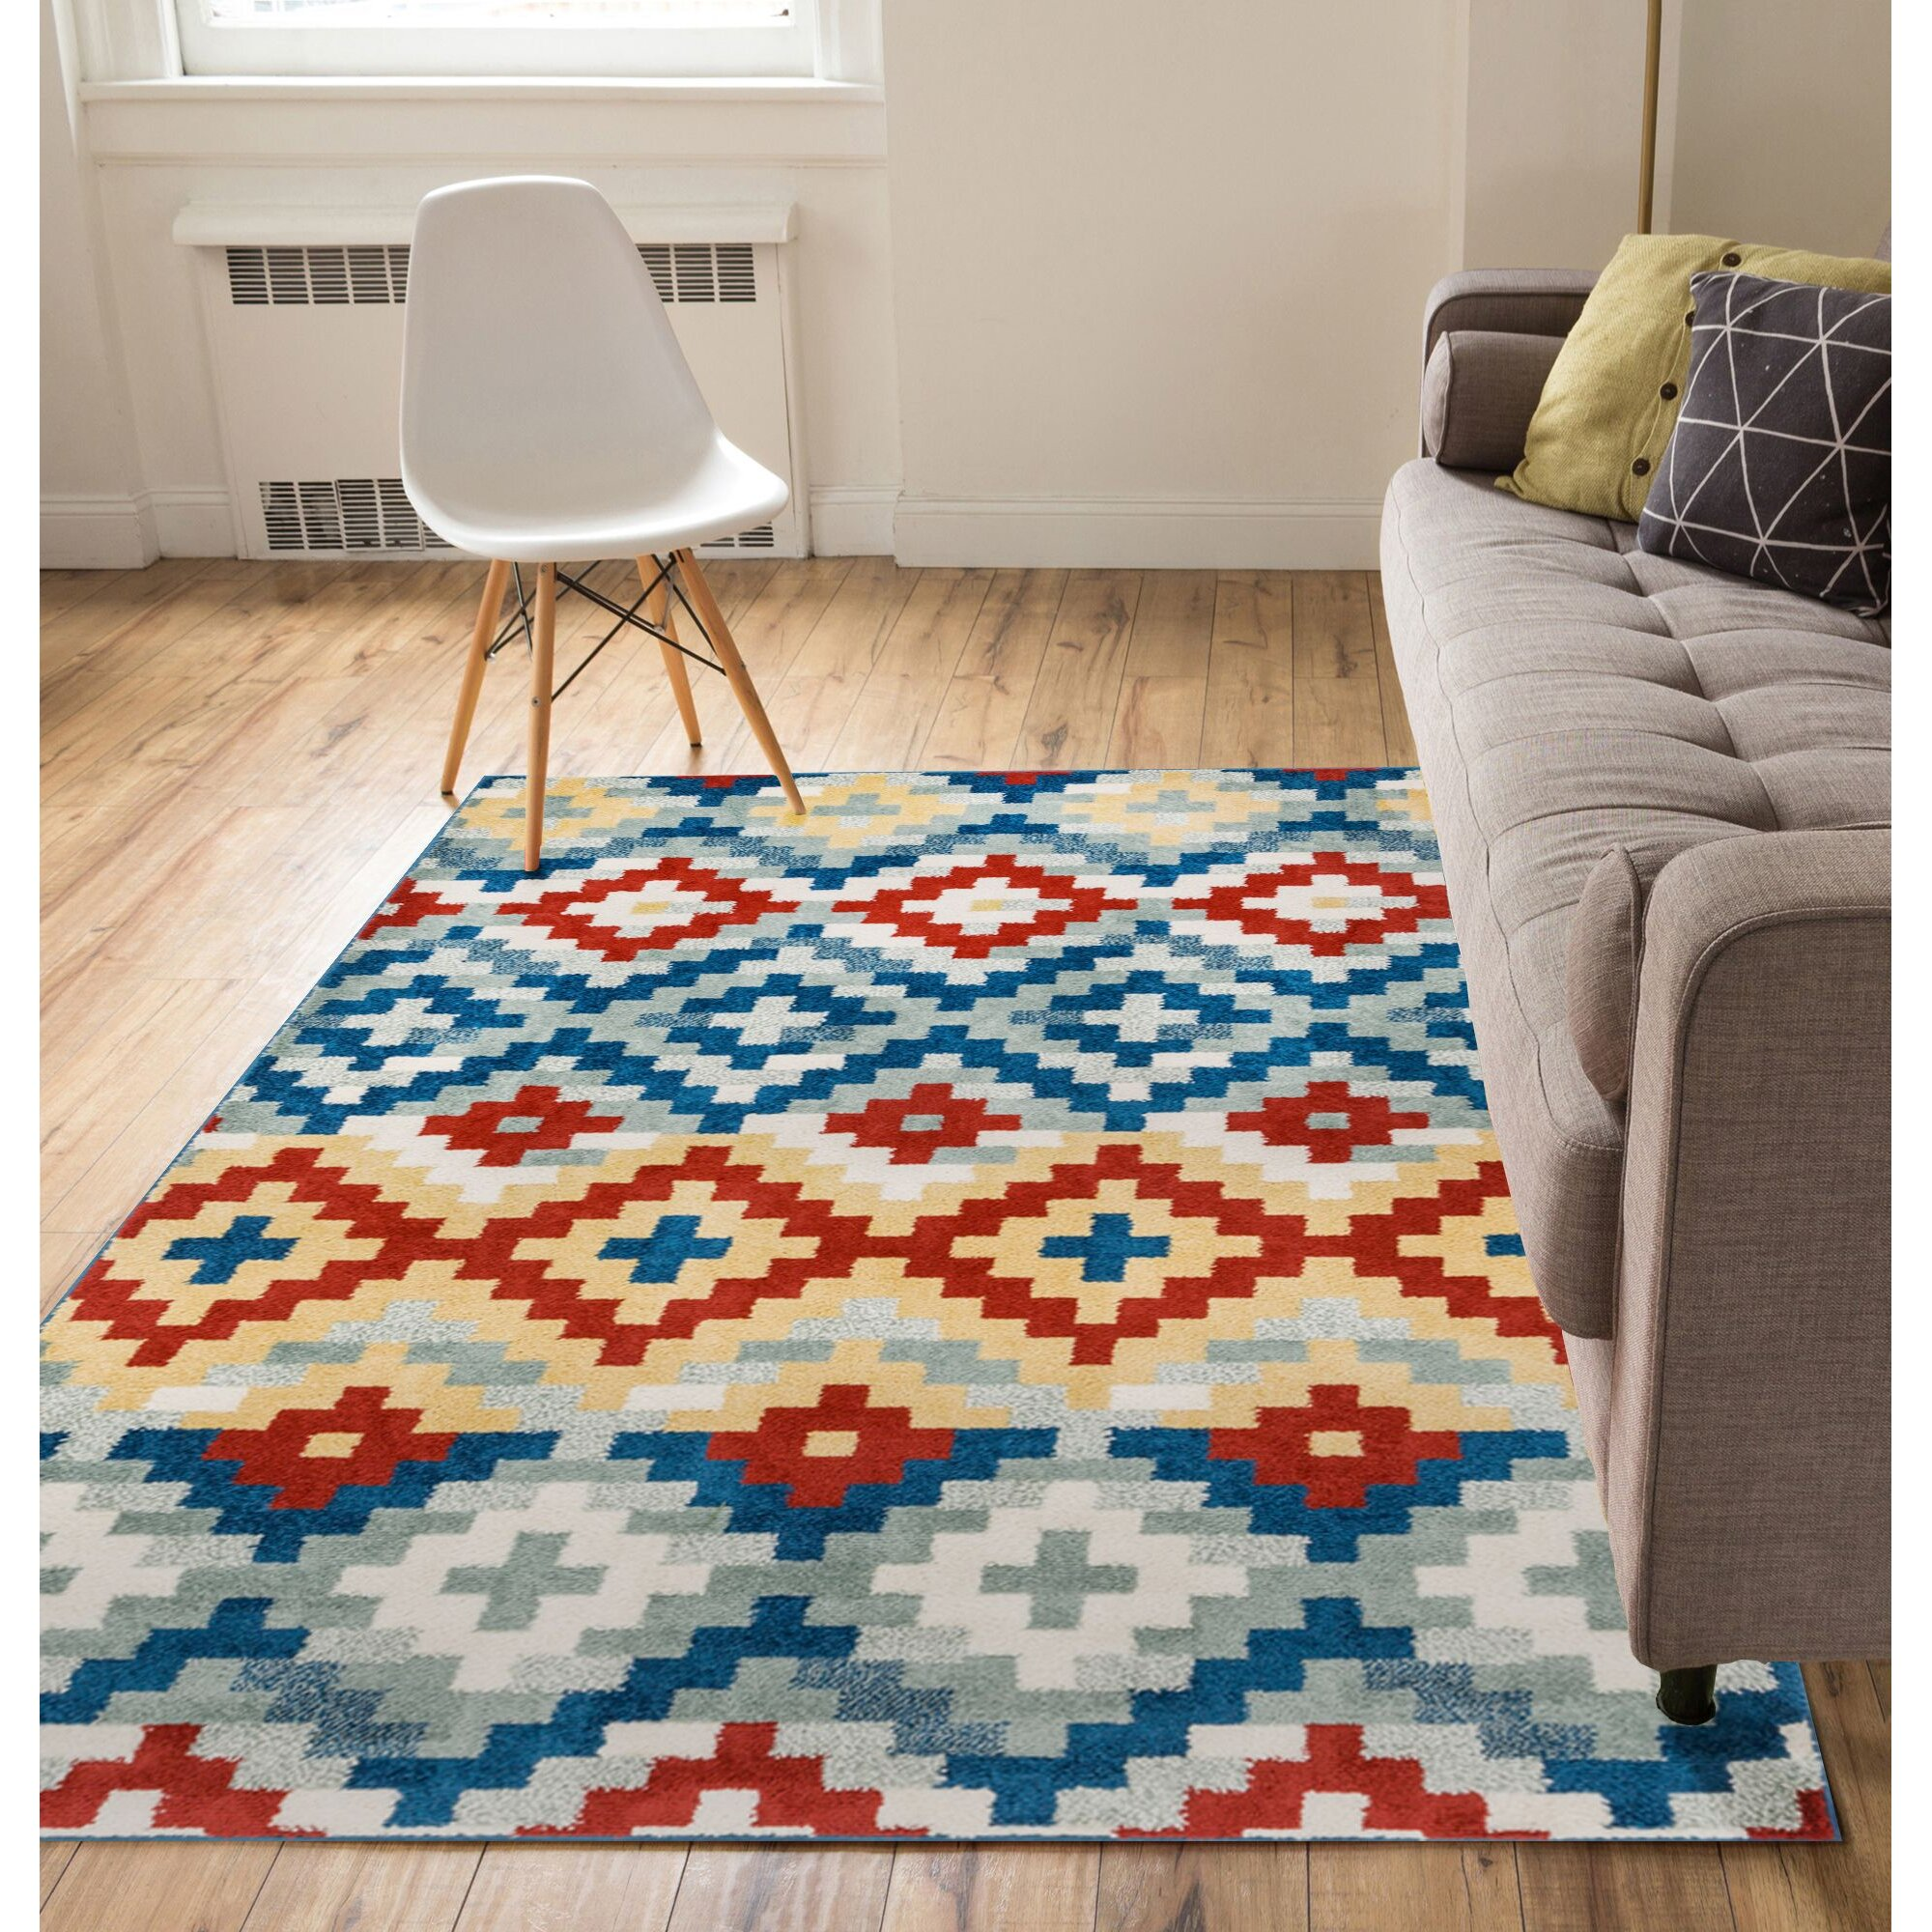 Well woven mystic austin red blue area rug for Red and blue area rug